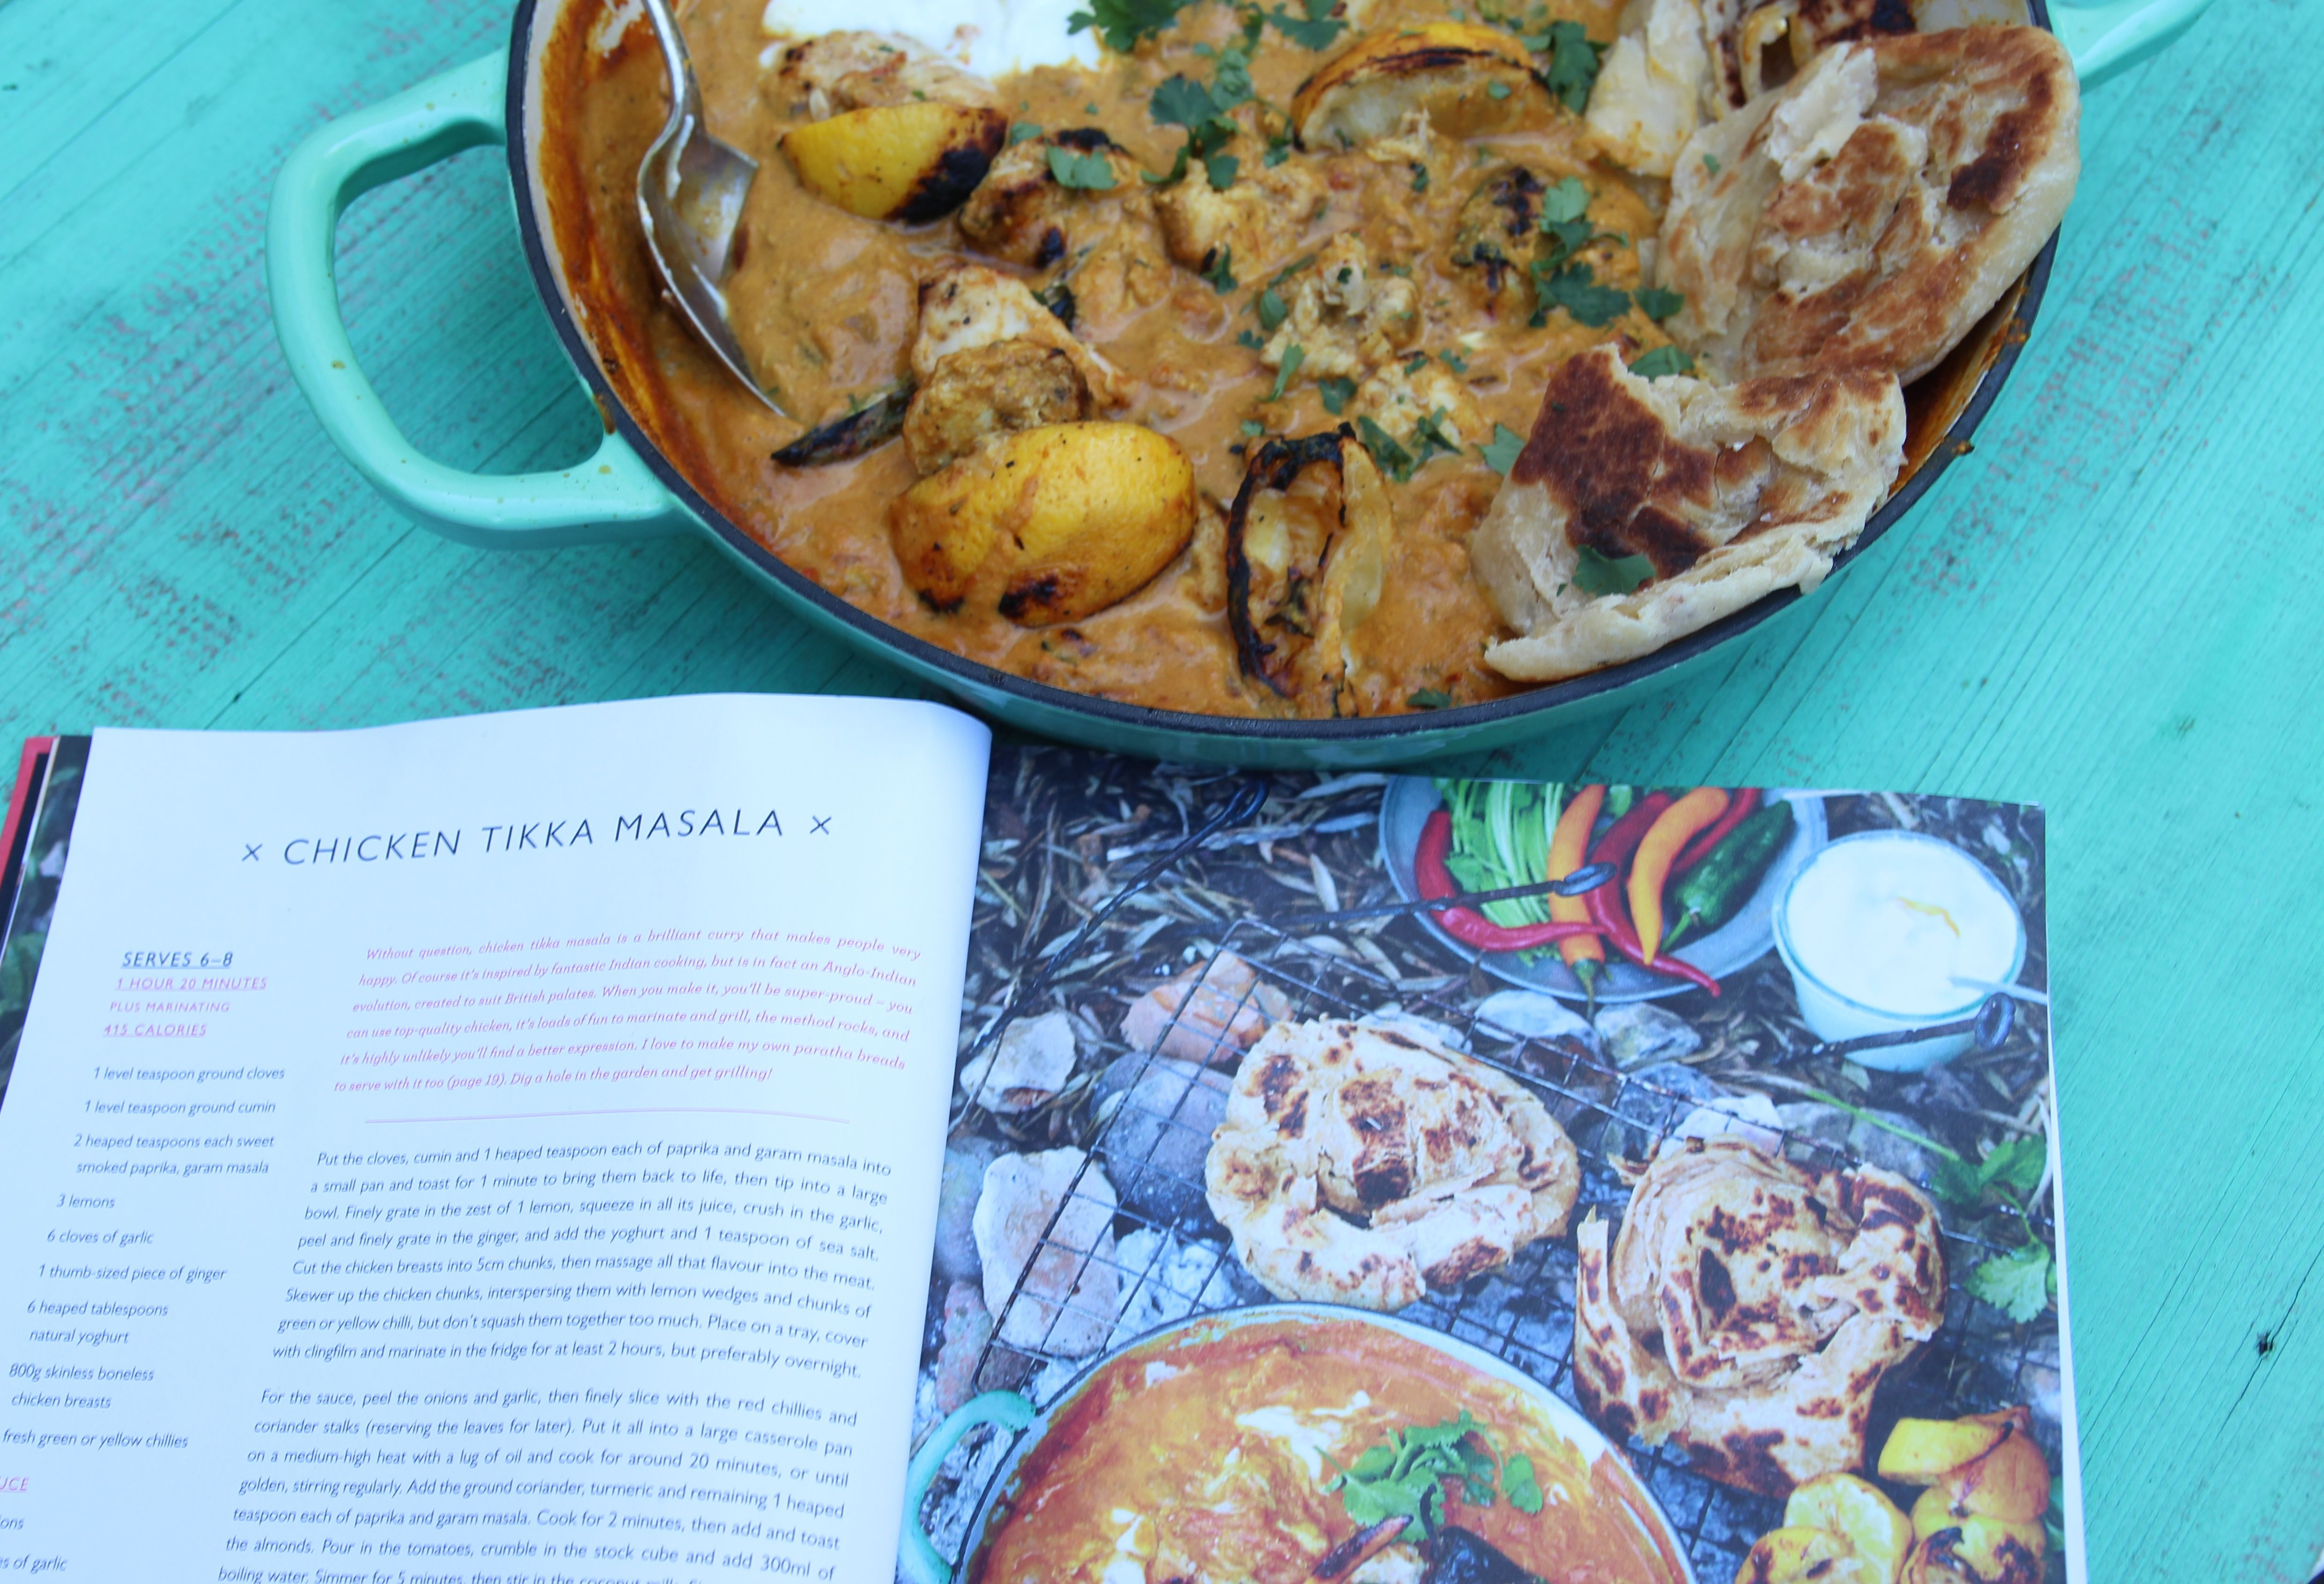 Jamie olivers chicken tikka masala the quirk and the cool i have just acquired jamies new book comfort food httpjamieoliver comfortfood forumfinder